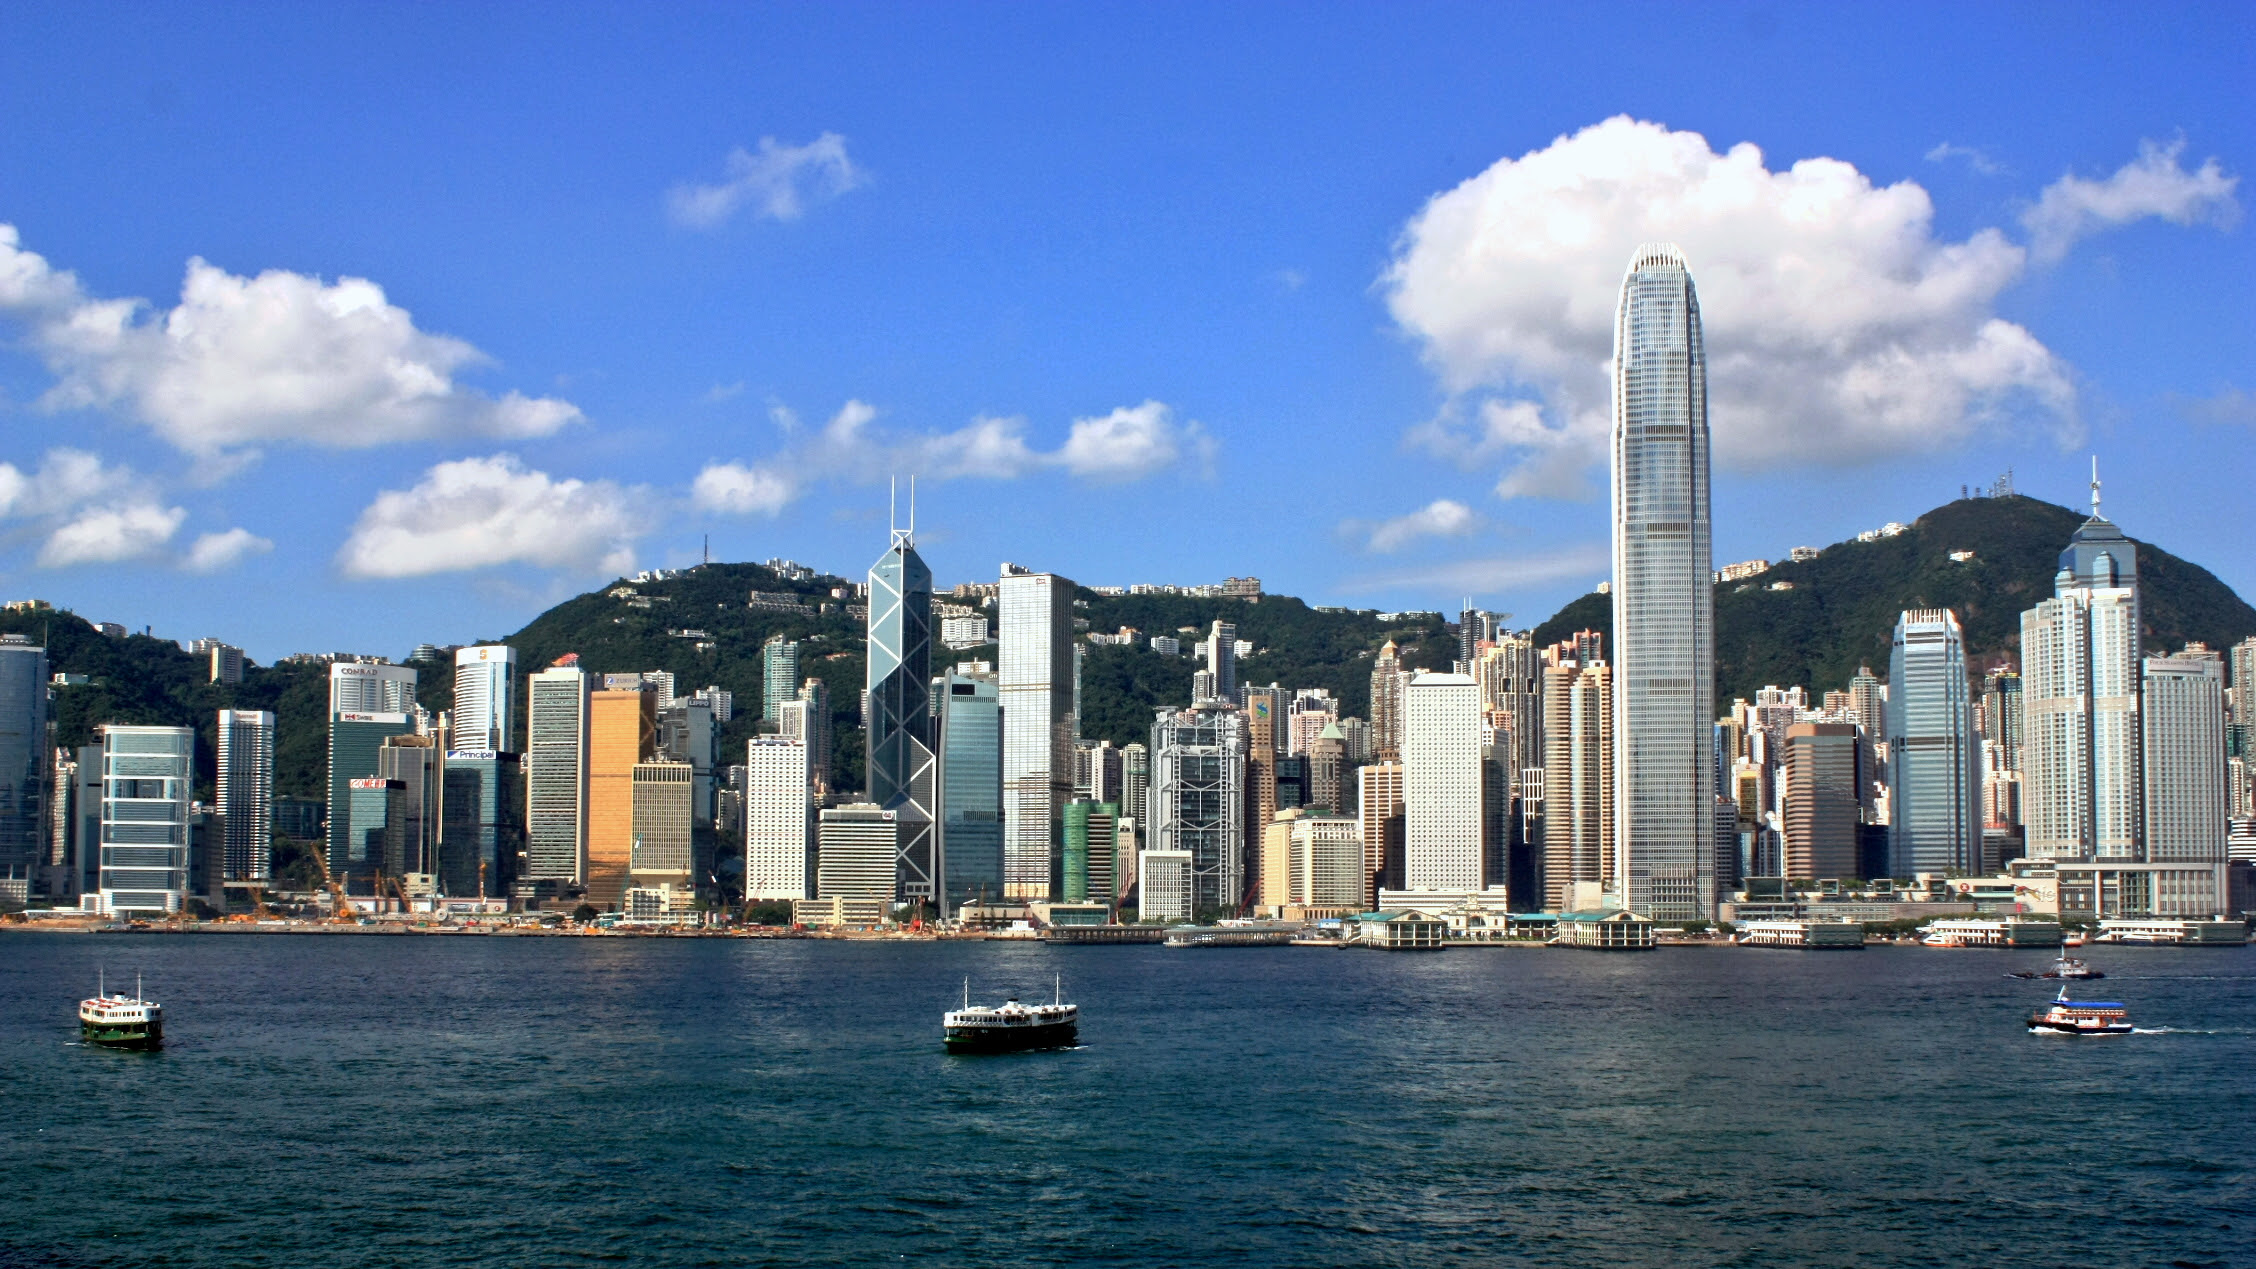 Hong Kong Skyline Location Map,Location Map of Hong Kong Skyline,Hong Kong Skyline accommodation destinations attractions hotels map reviews photos pictures,hong kong skyline light show silhouette vector buildings smog canvas,travel skyline marriott tower hong kong